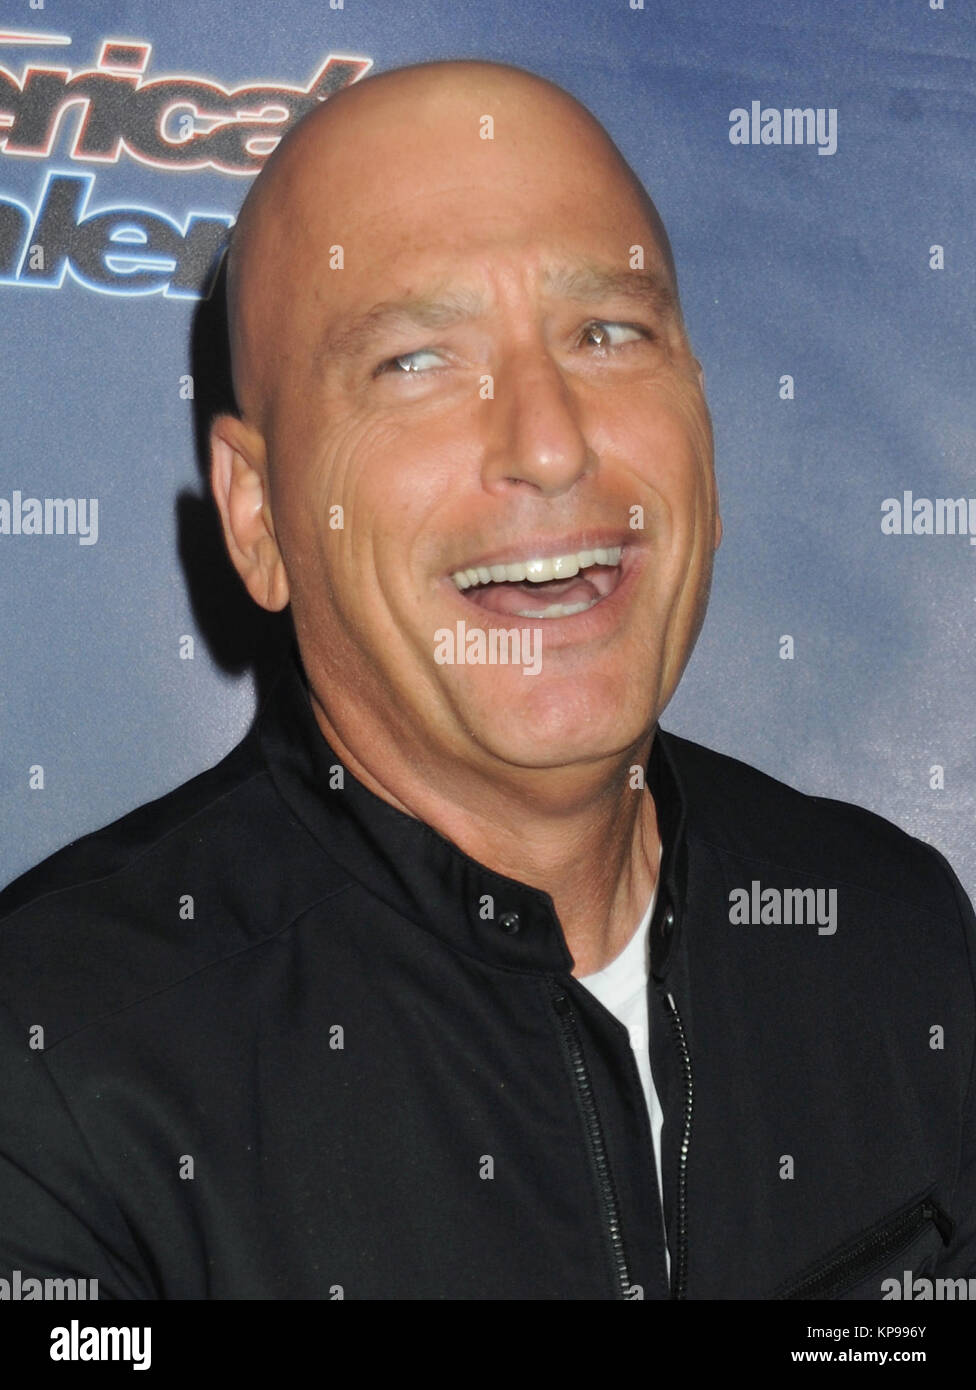 NEW YORK, NY - AUGUST 19: Howie Mandel attends 'America's Got Talent' post-show red carpet event at Radio City Music Stock Photo